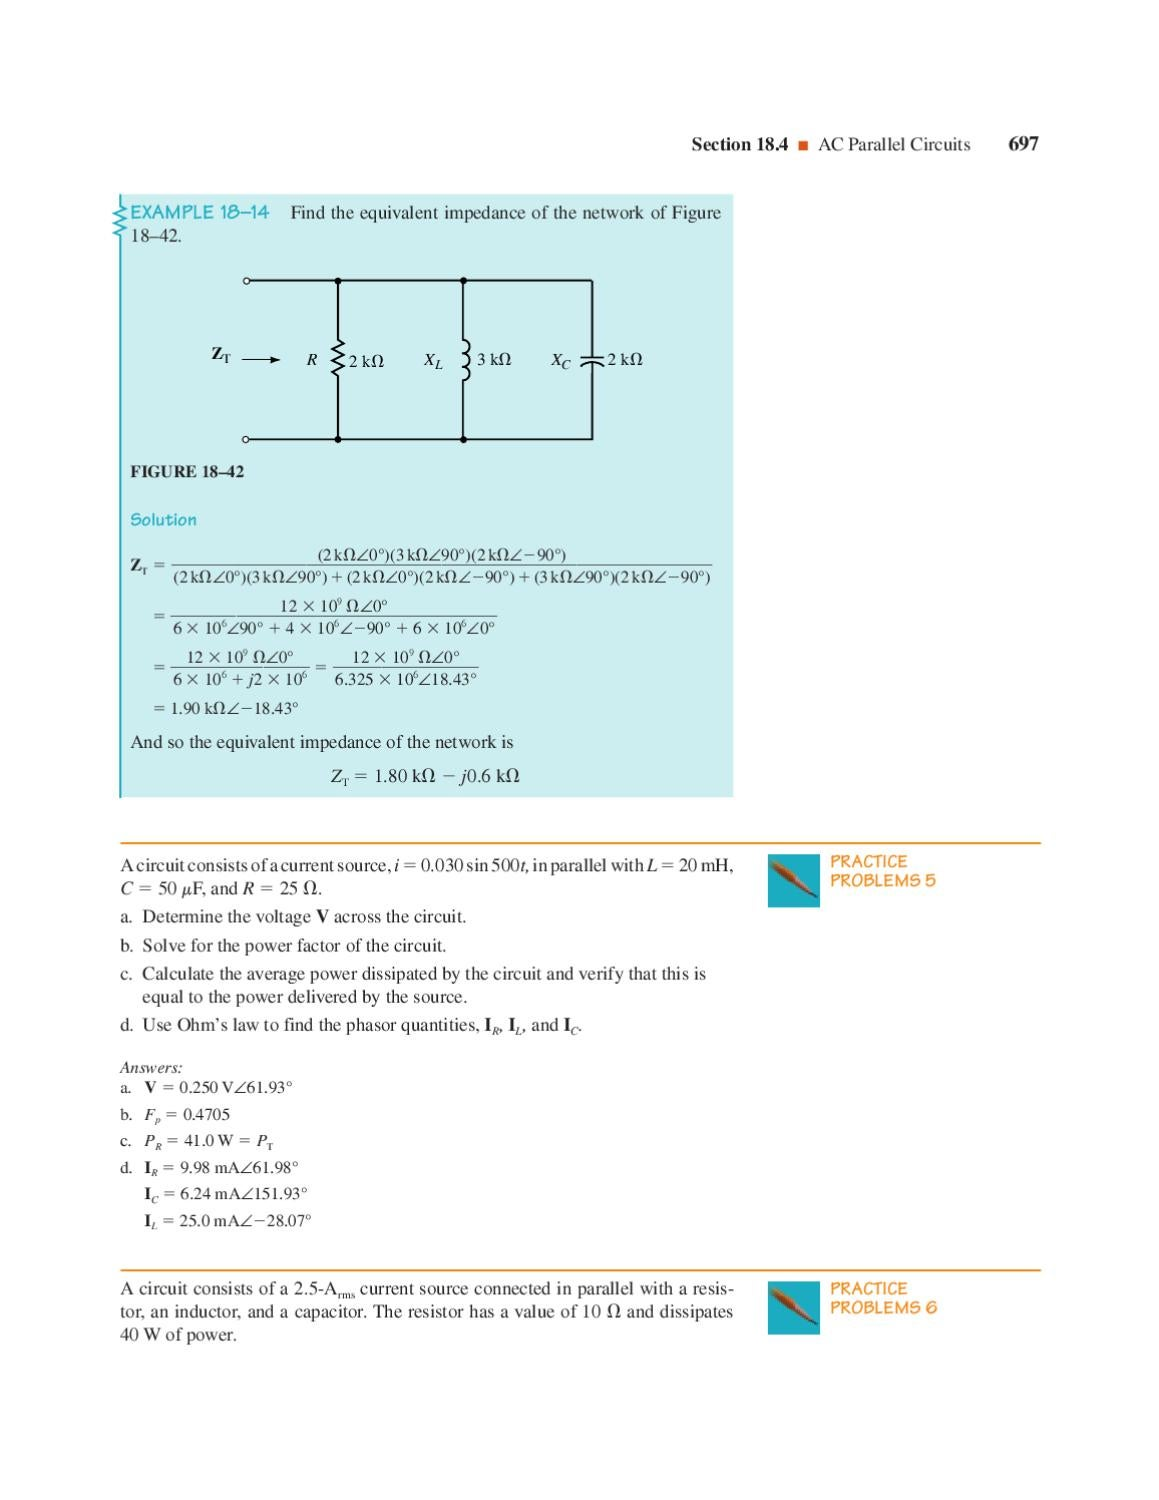 Analisis De Circuitos By Jose Luis Ola Issuu All The Resistors In A Parallel Circuit We Can Use Ohms Law To